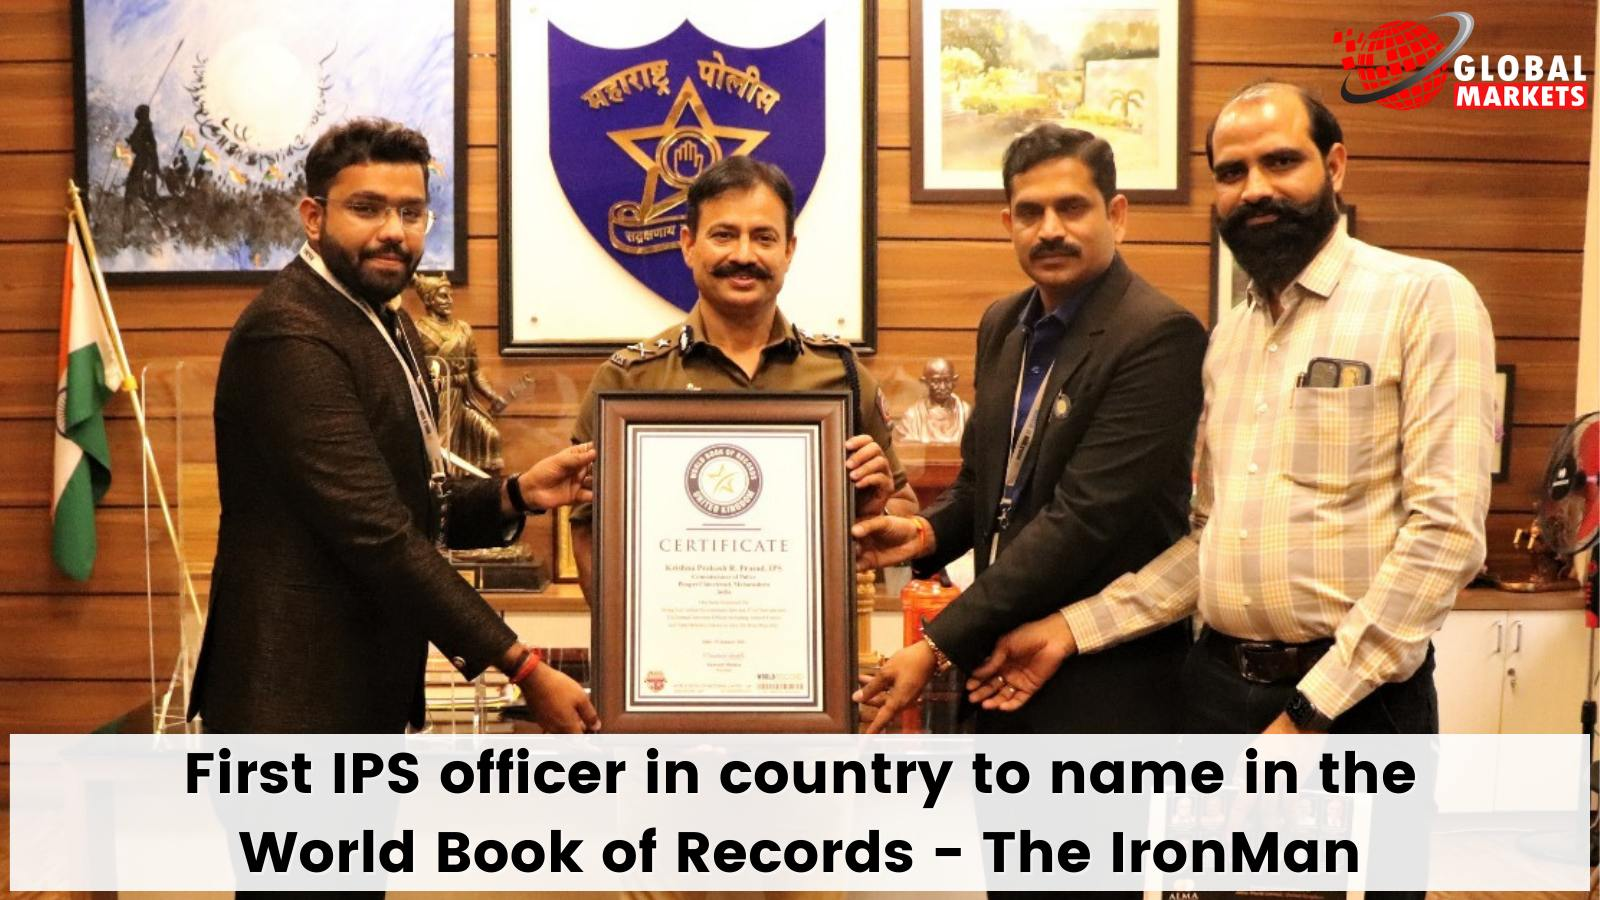 First IPS officer in-country to name in the World Book of Records